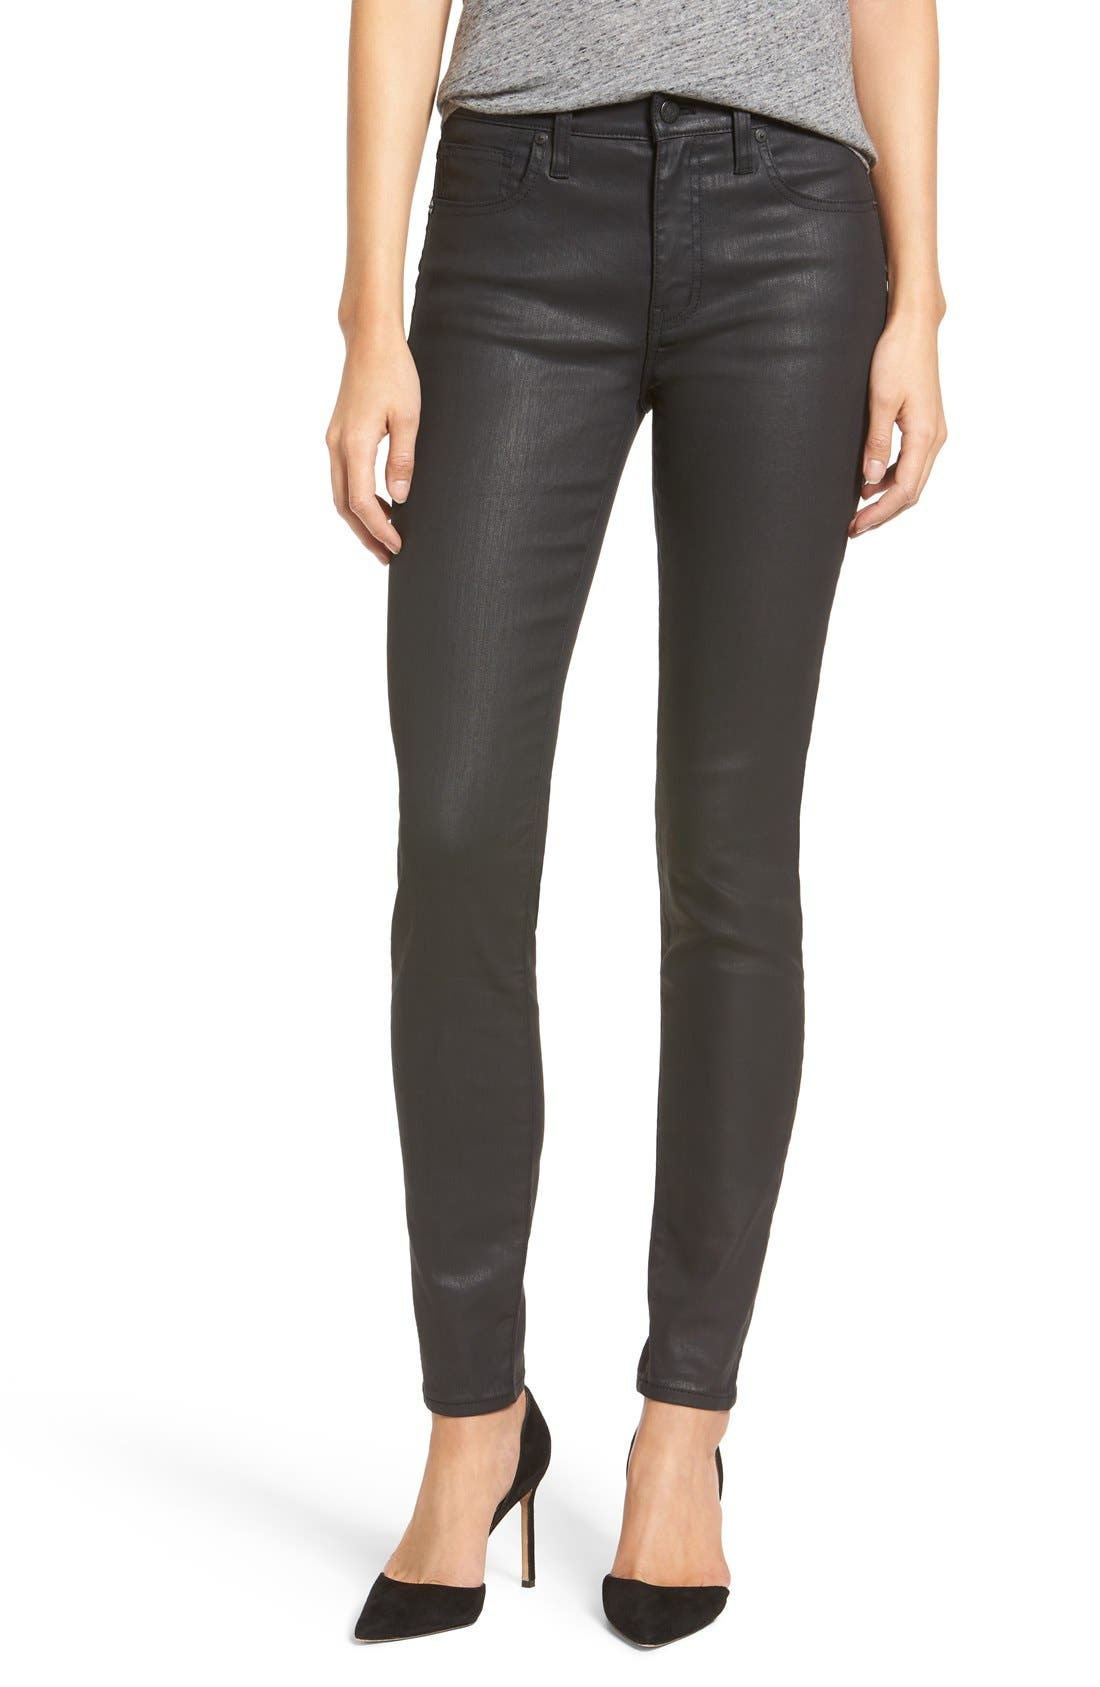 Main Image - Madewell 'High Riser' Coated Skinny Jeans